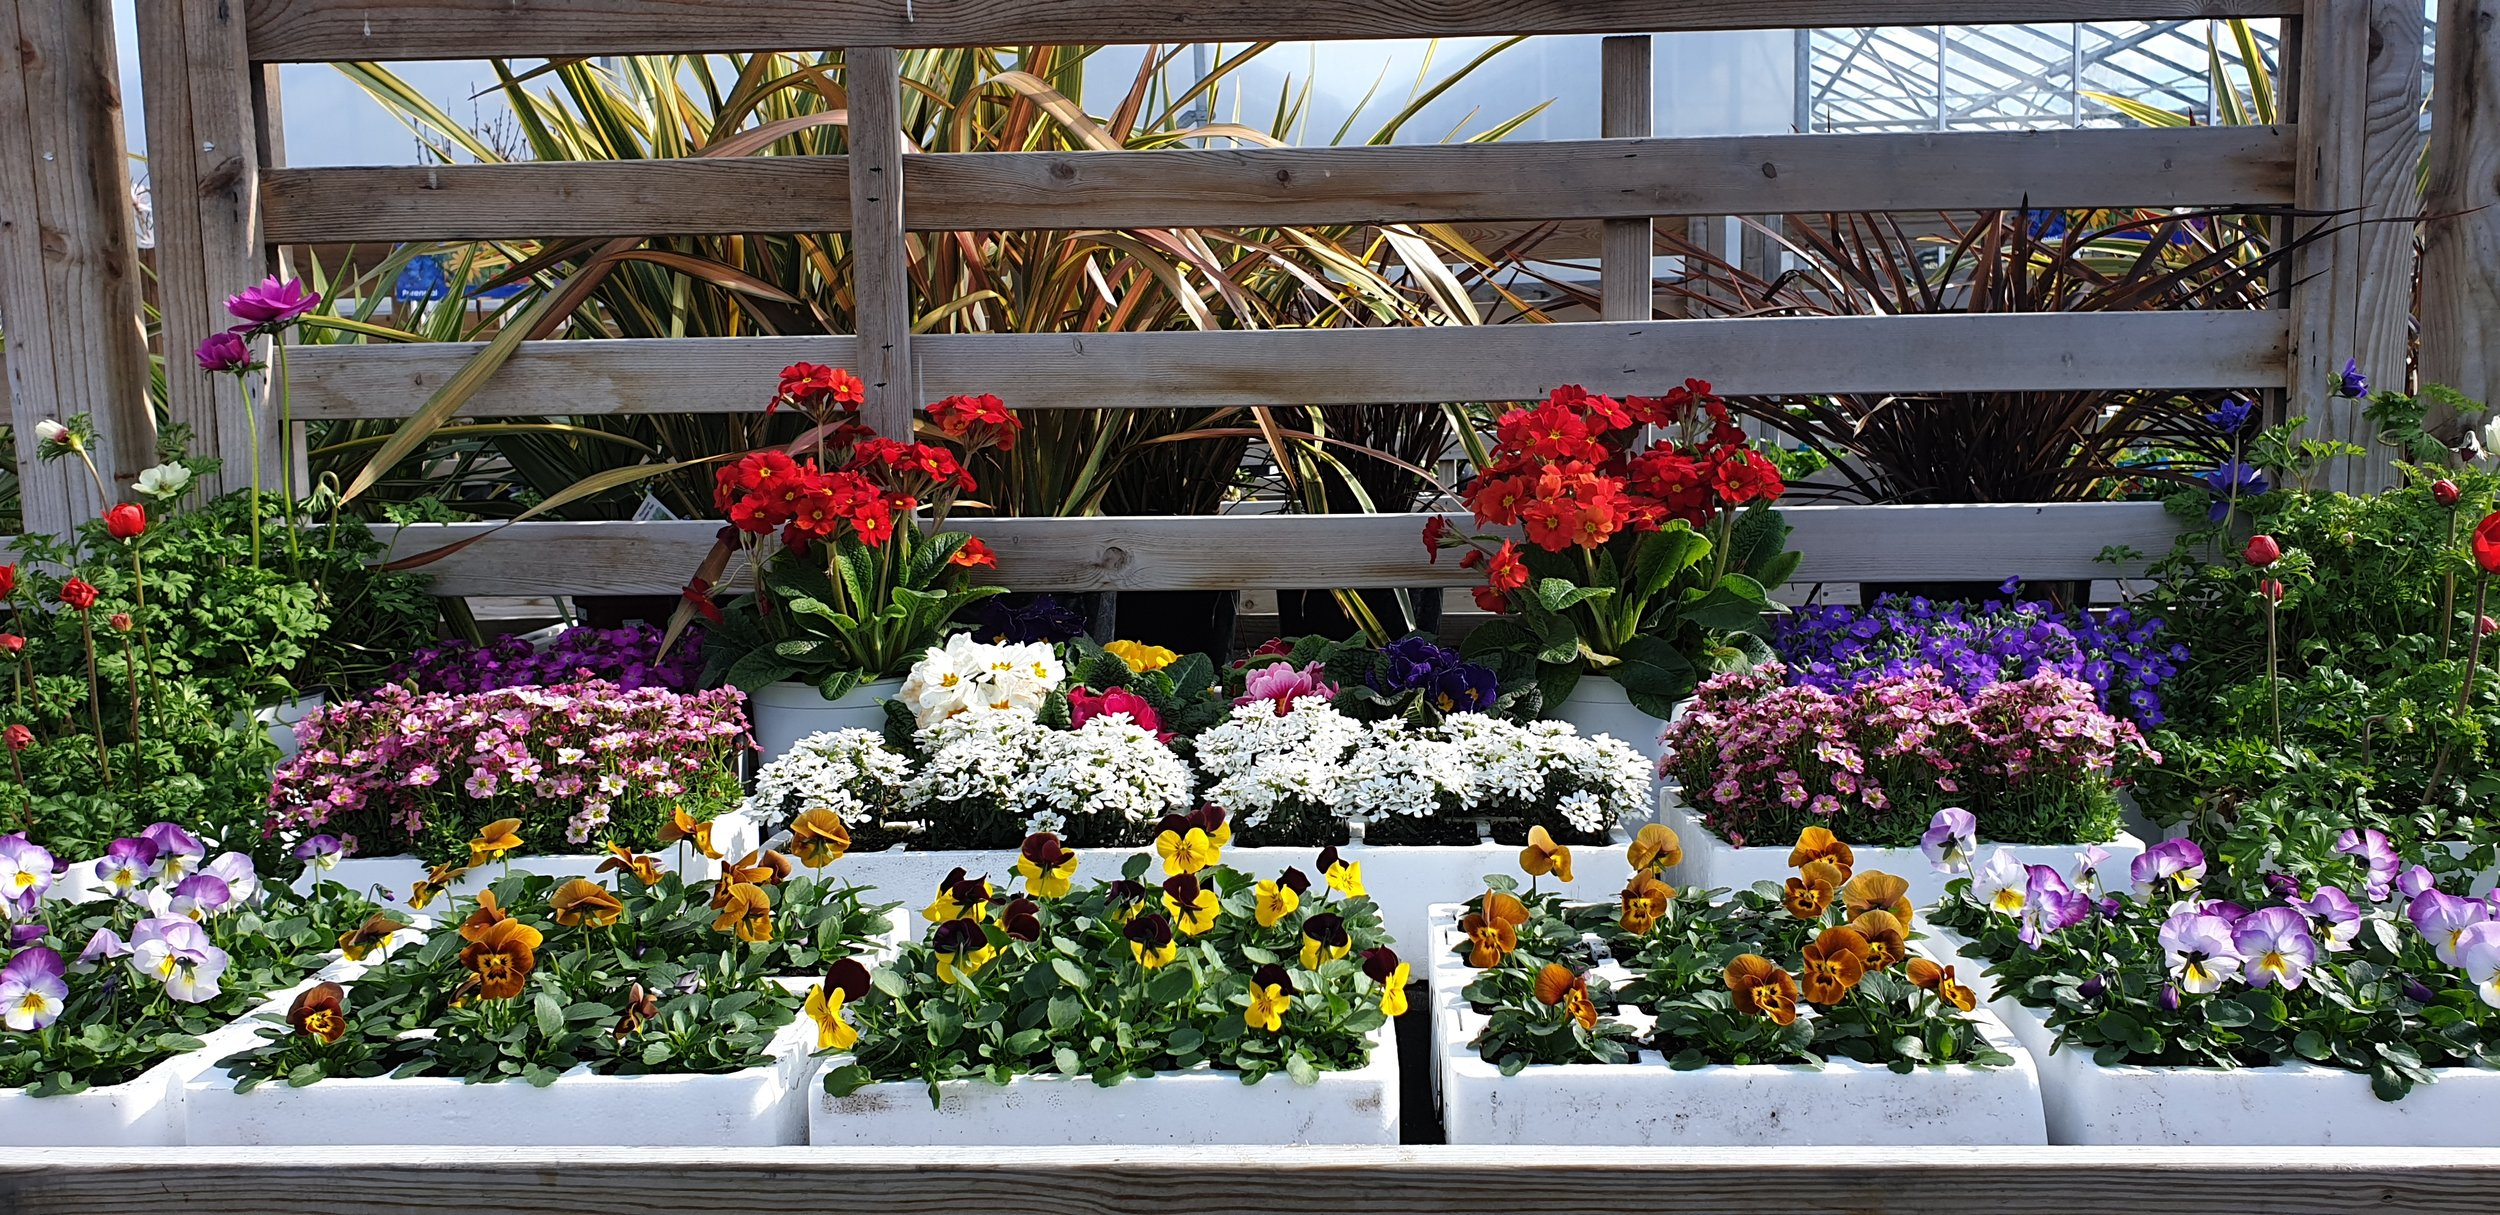 High quality plants grown year round with everything you need for them. -